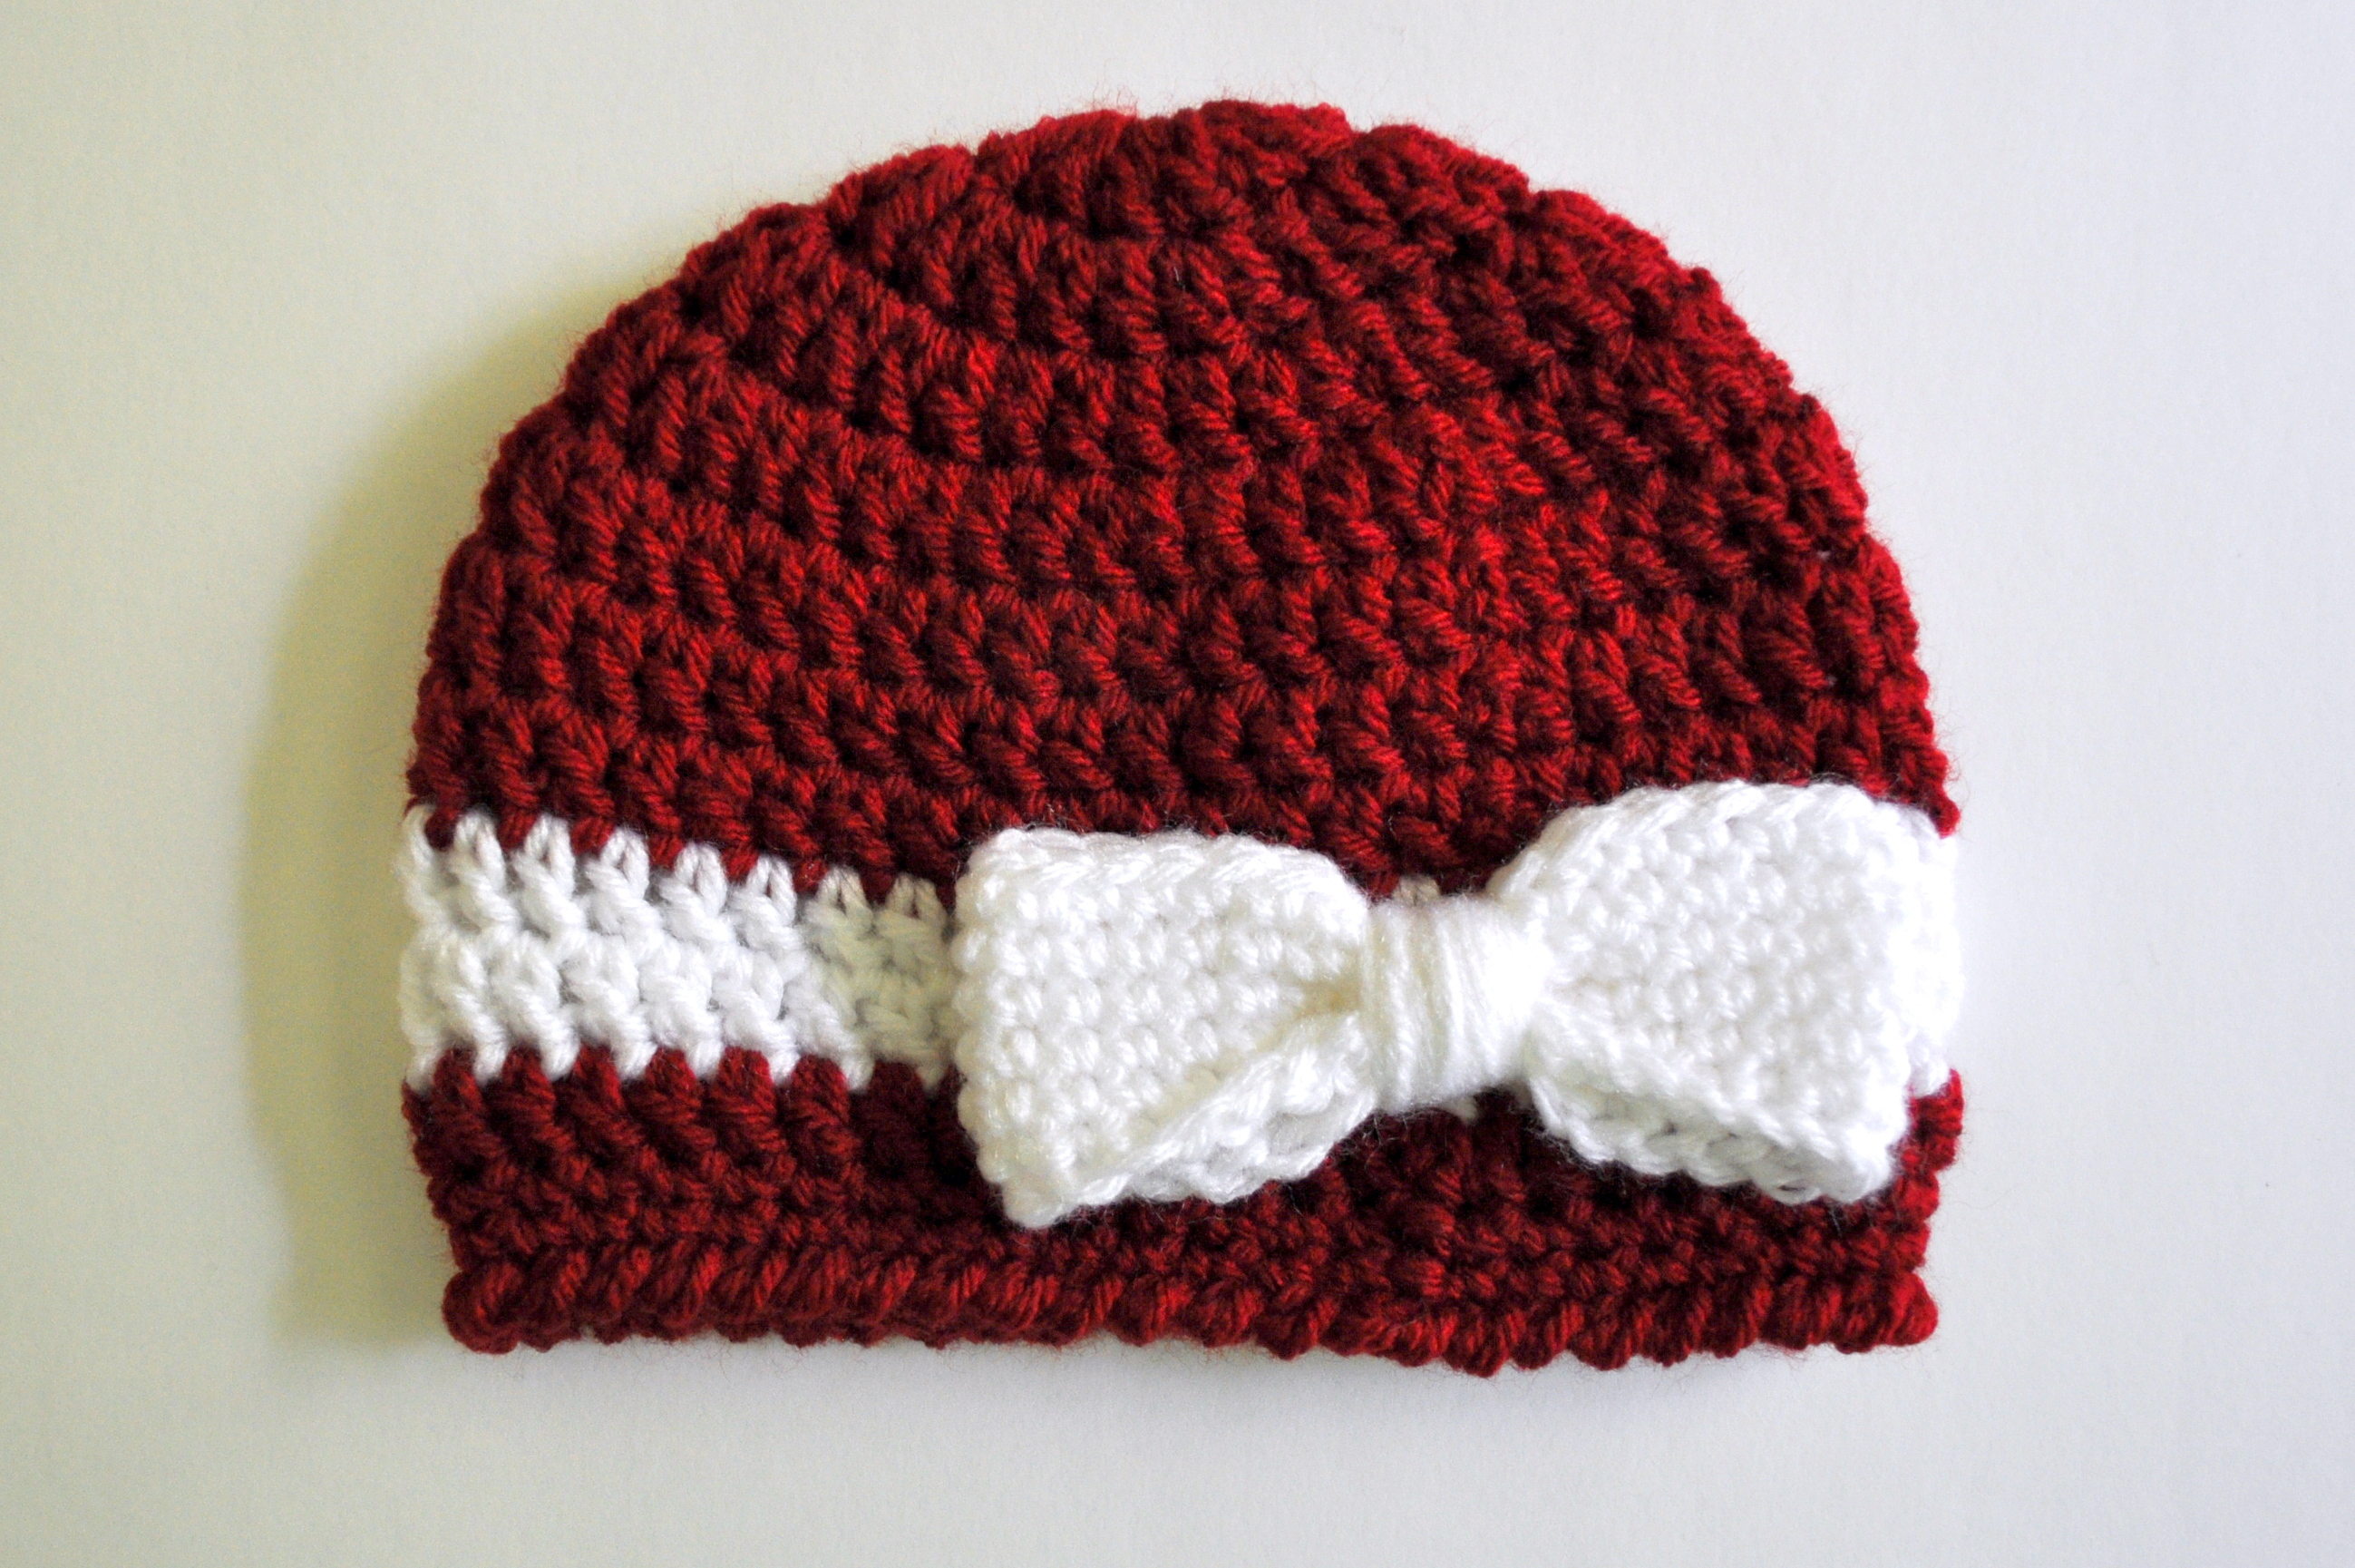 Free pattern crochet bow and ribbon baby hat classy crochet crochet ribbon and bow baby hat pattern classy crochet bankloansurffo Images